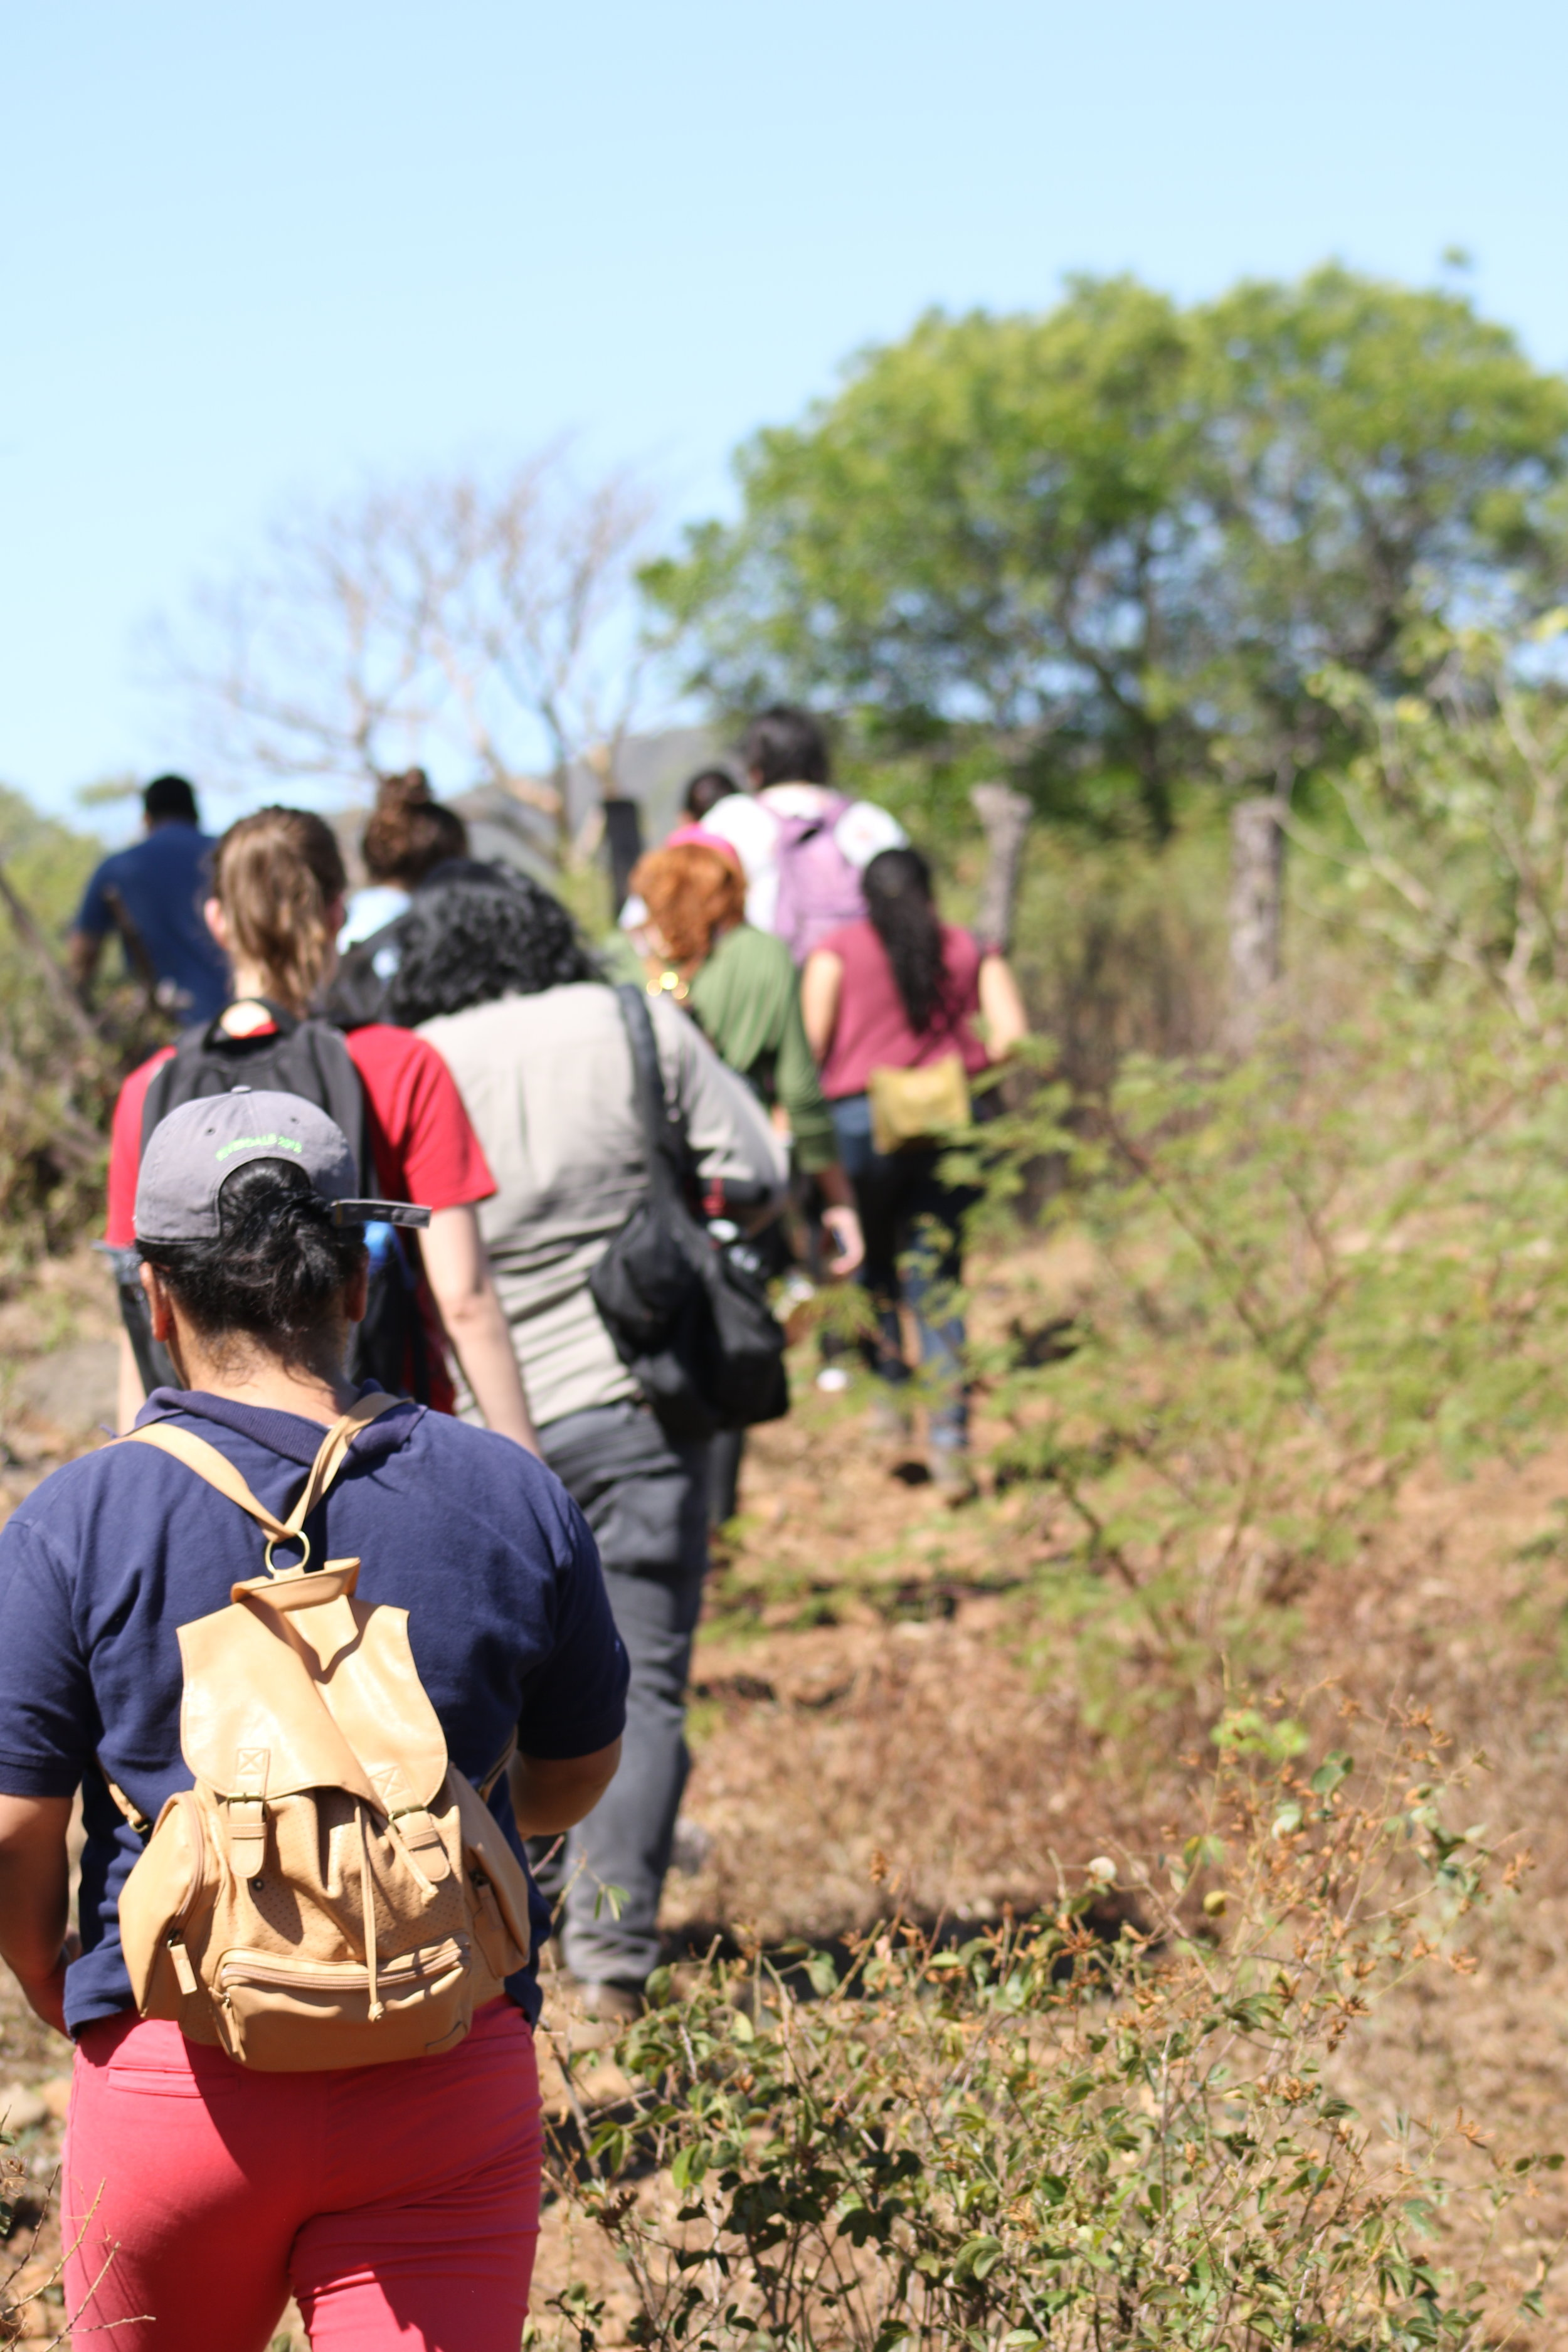 Journalists and human rights advocates follow witnesses and judicial experts around El Calabozo. / Photo Cristosal